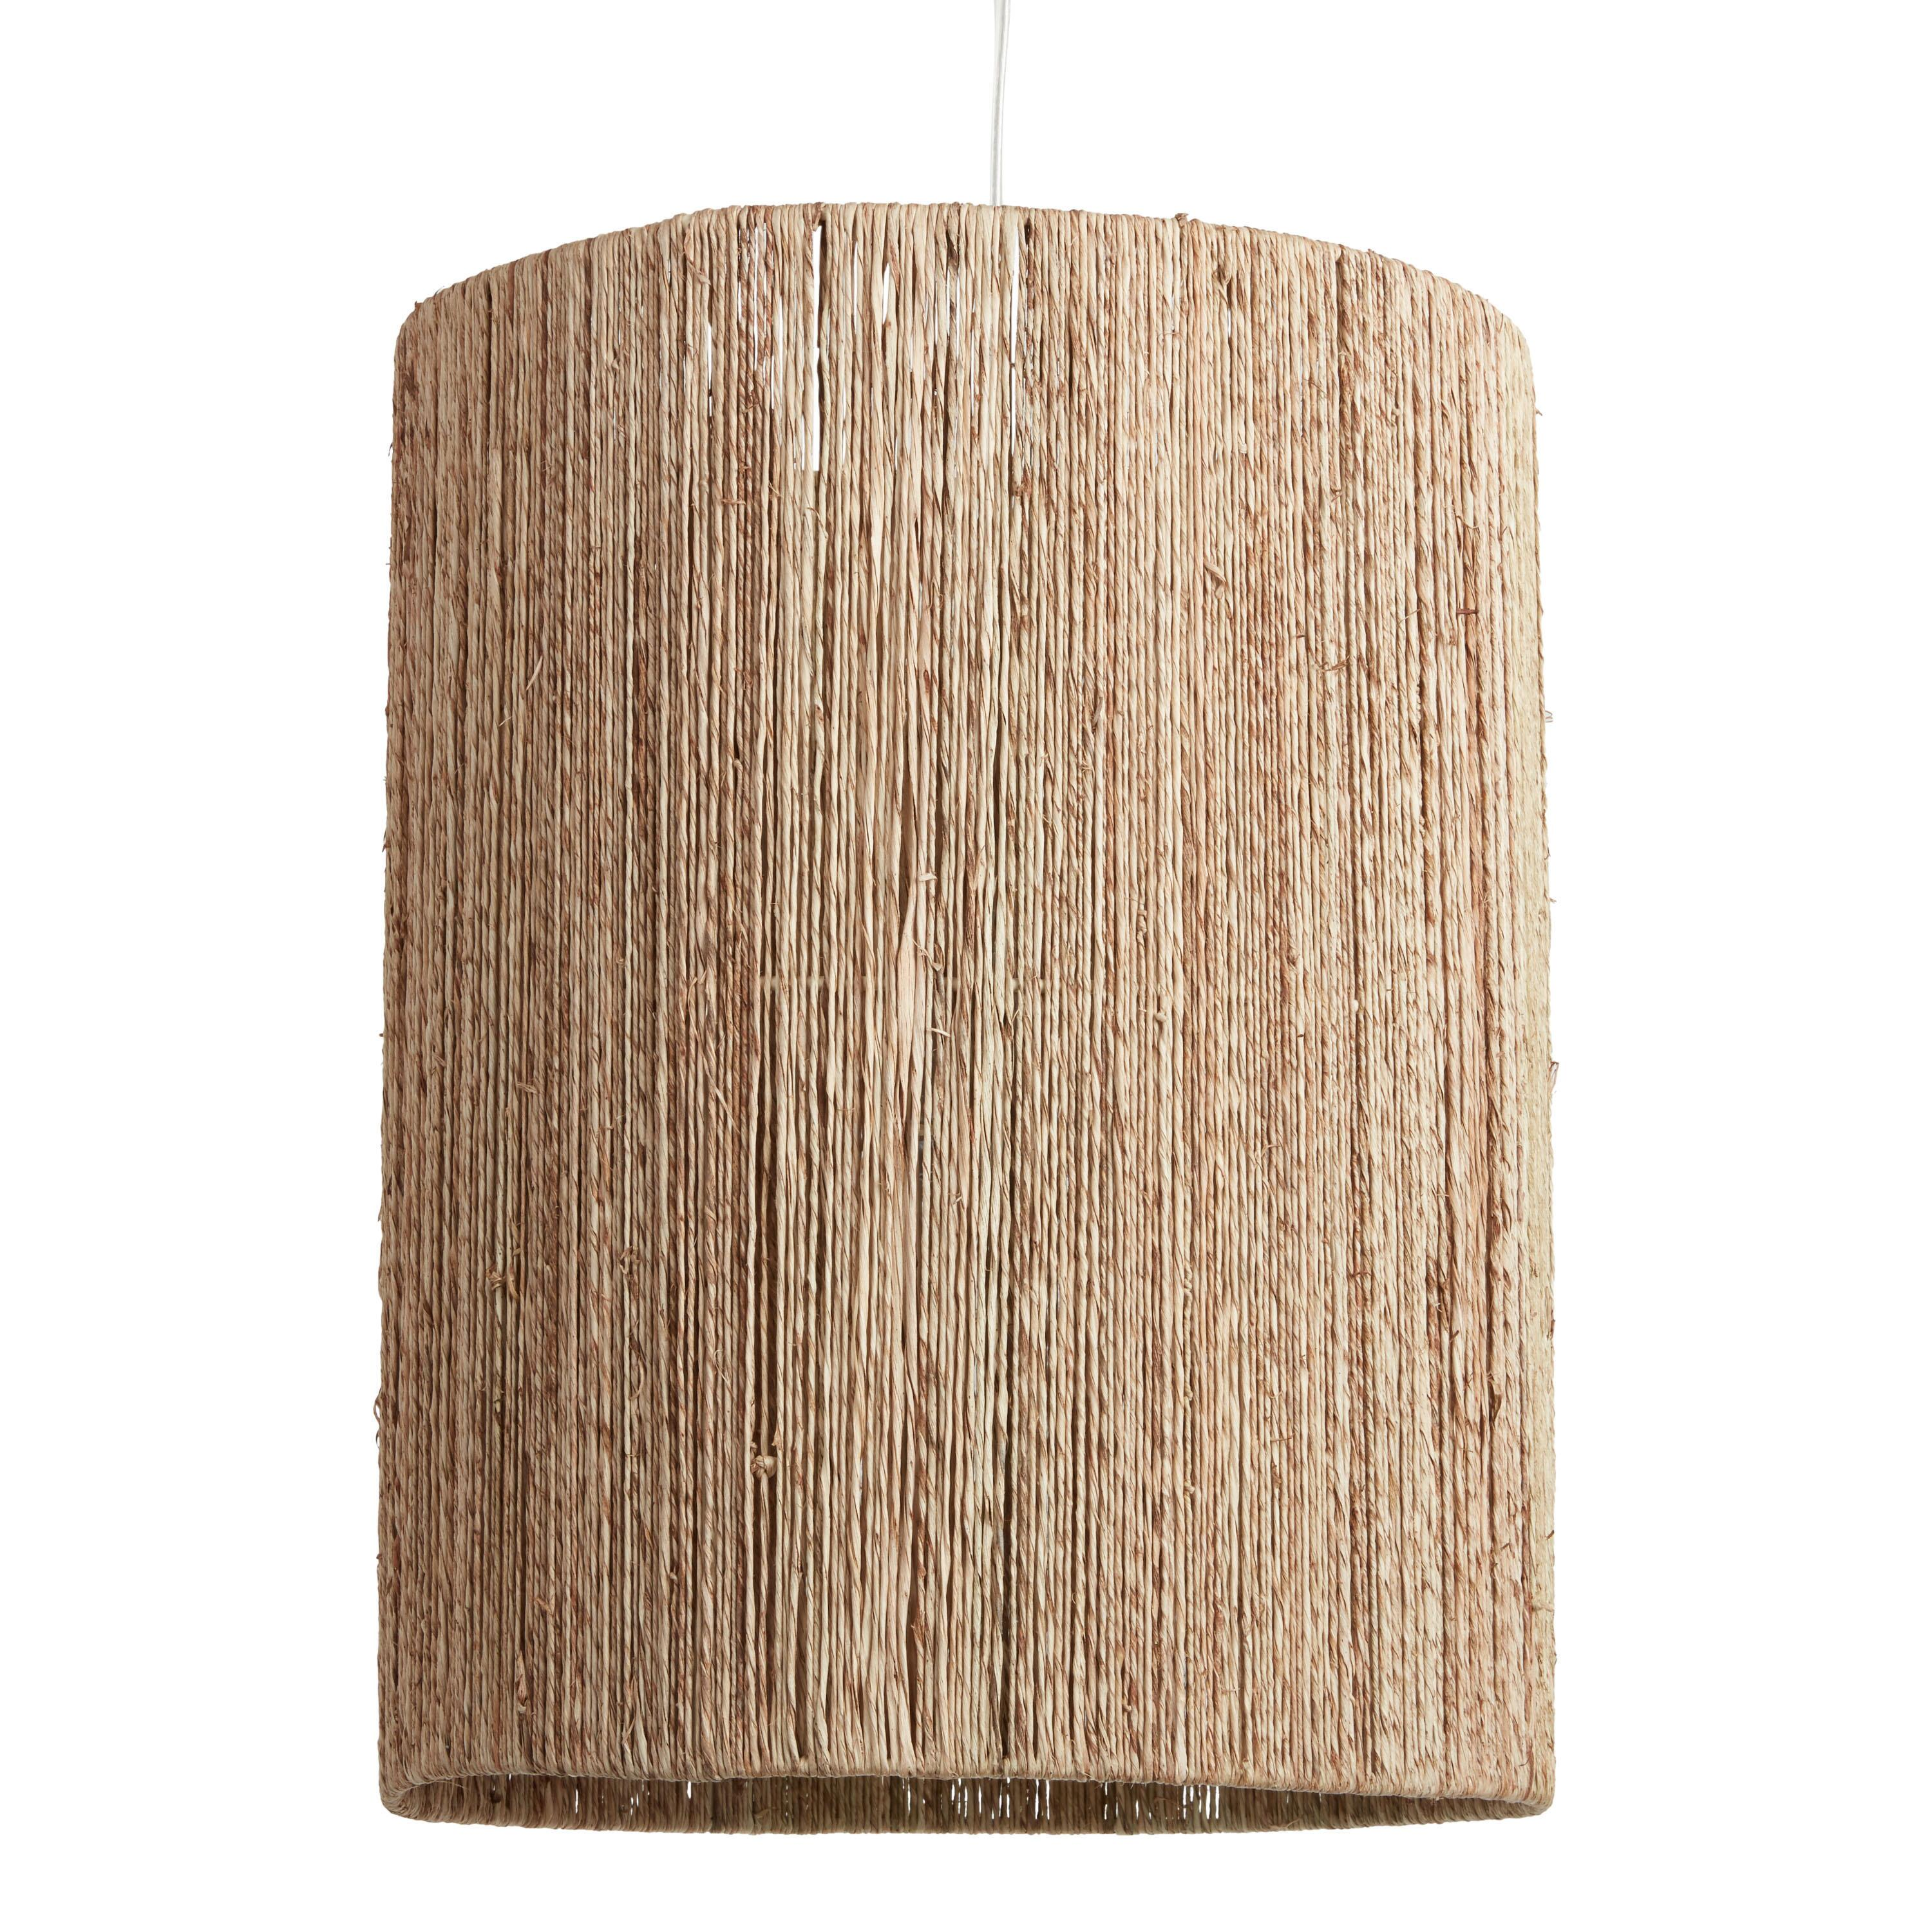 Very Large Lamp Shades: Bespoke Floor Lamp Shades Lamps,Lighting